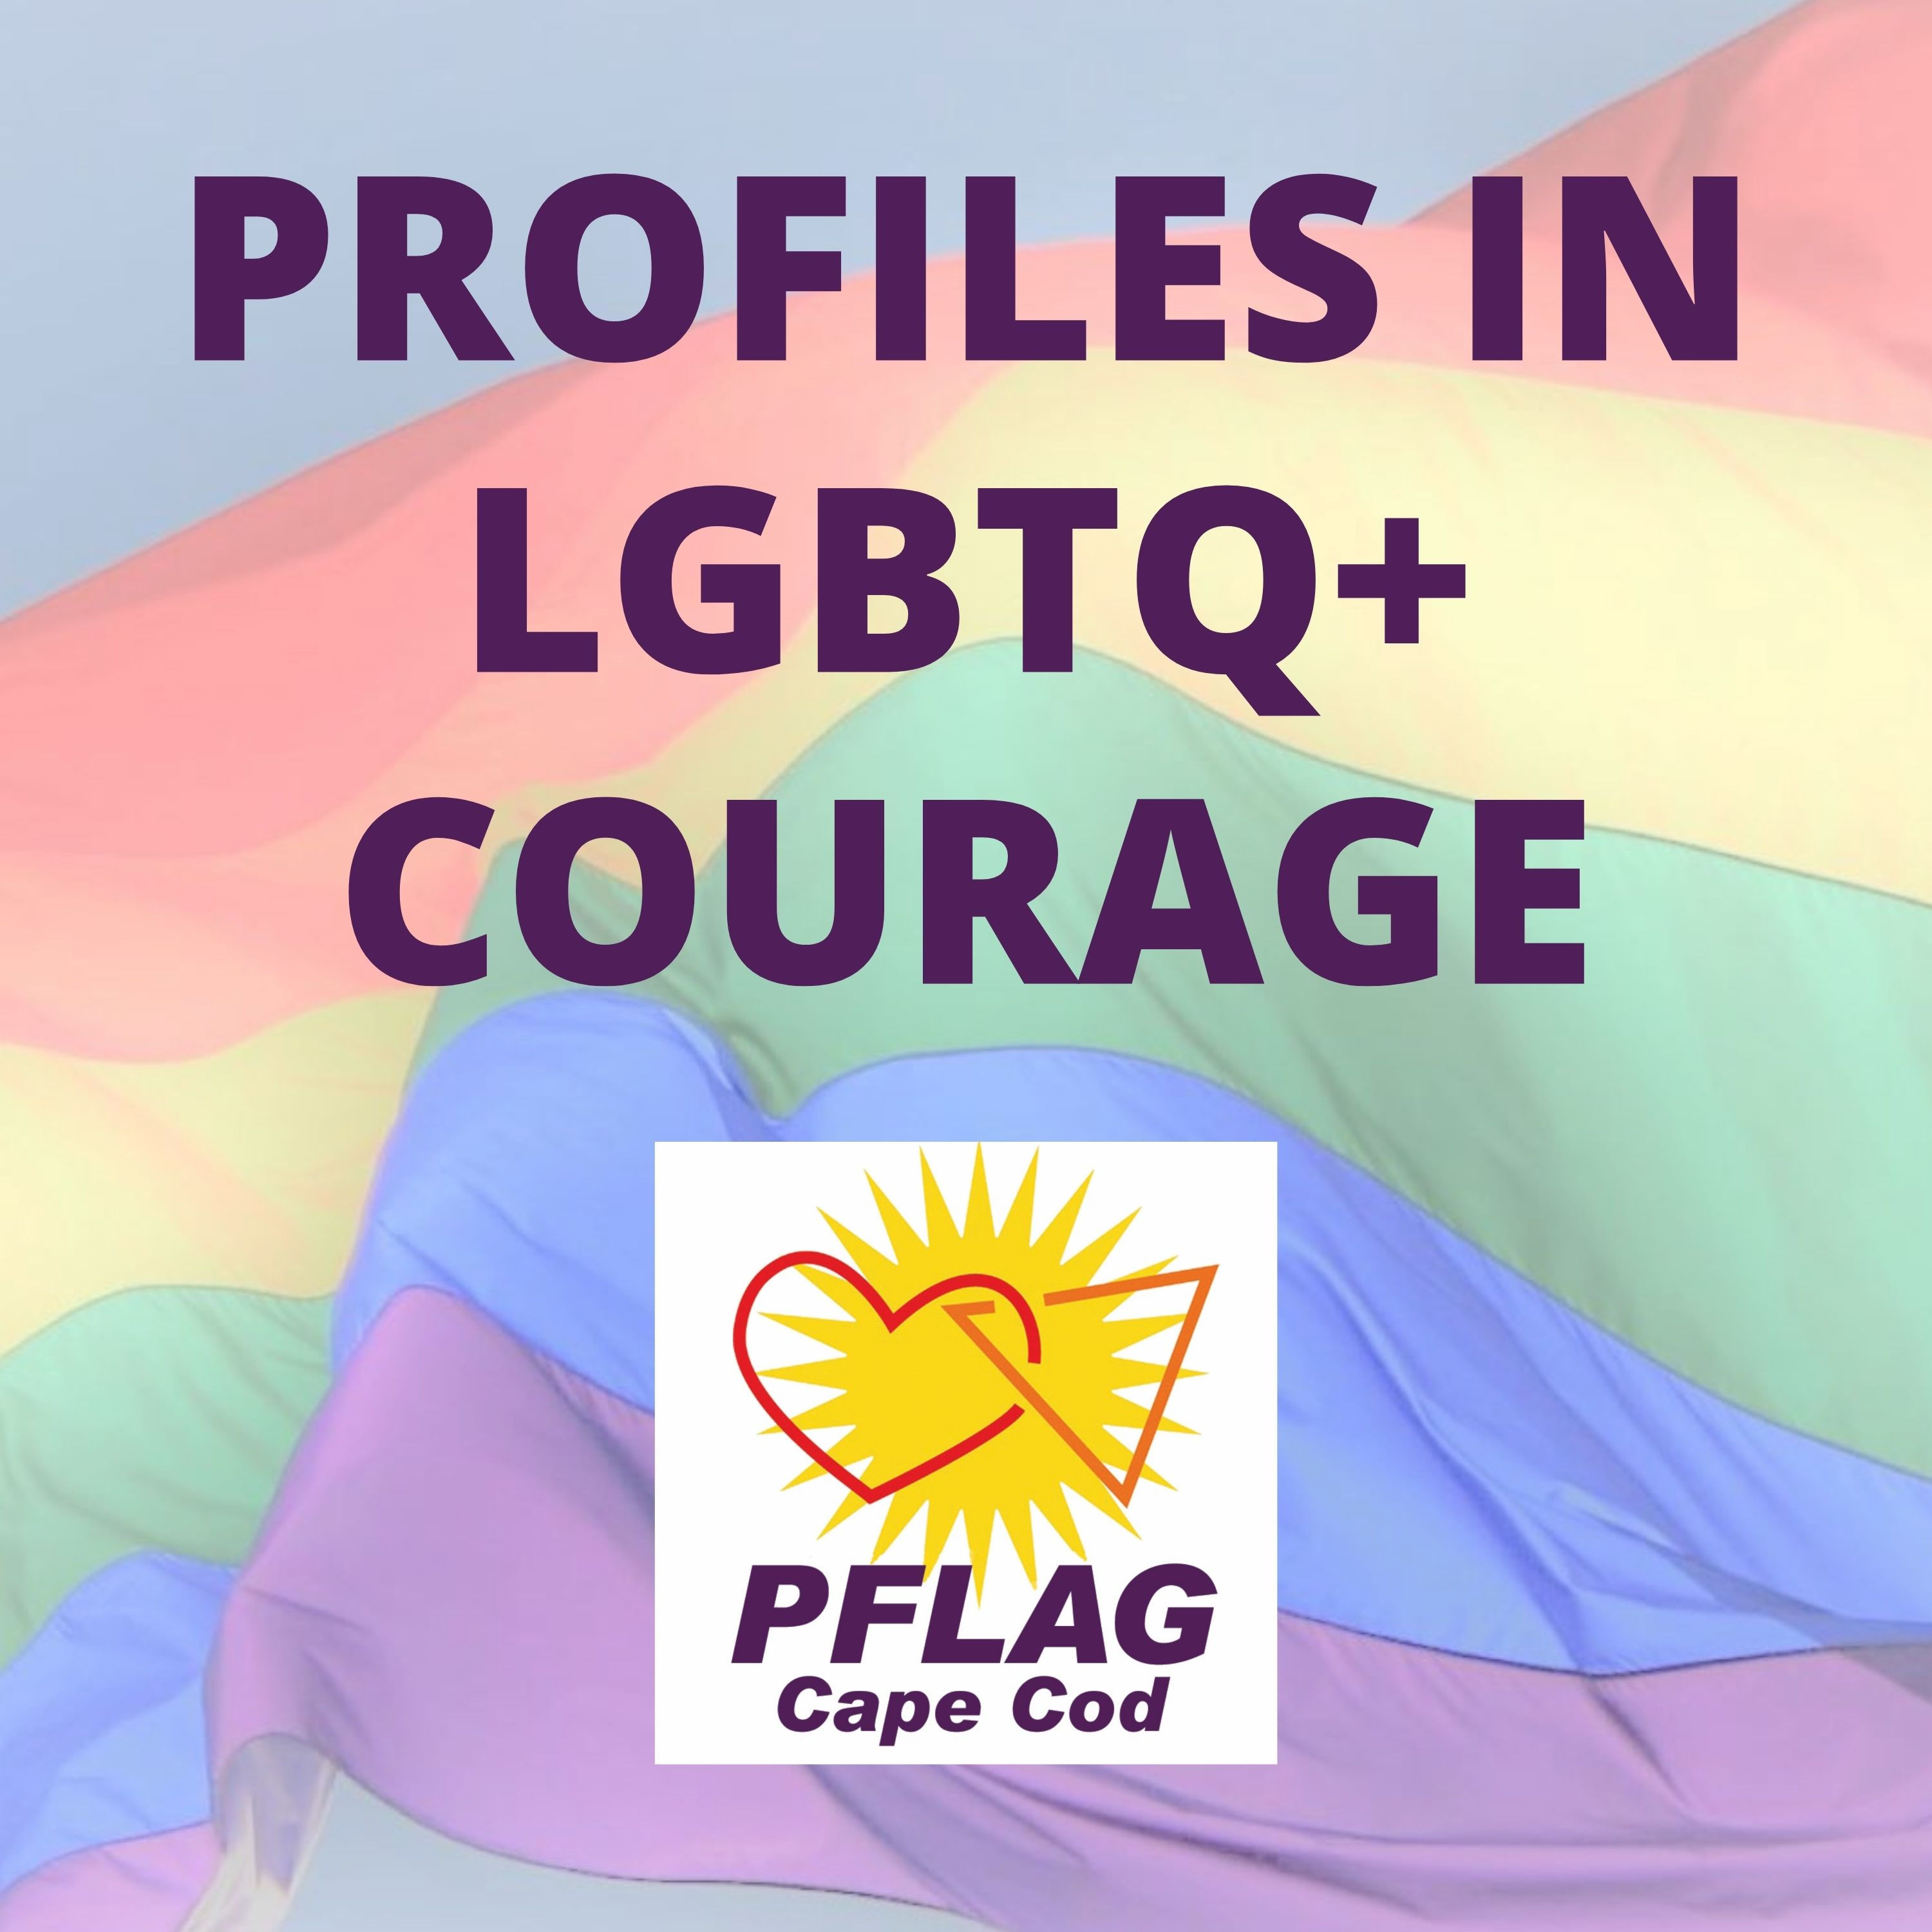 Profiles in LGBTQ+ Courage podcast show image